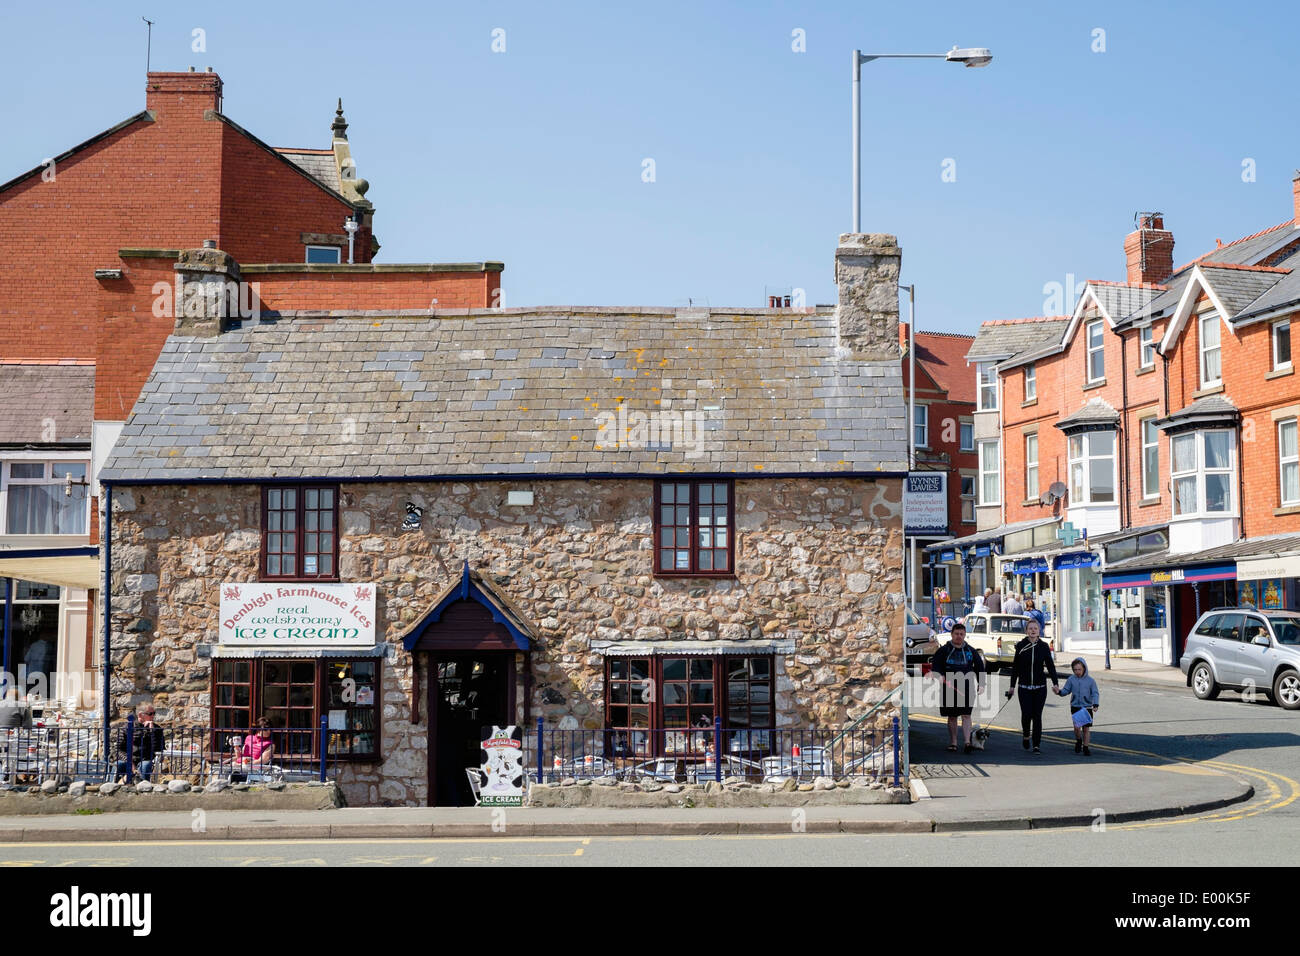 Cafe in old stone cottage on the seafront in Rhos-on-Sea, Colwyn Bay, Conwy, North Wales, UK, Britain - Stock Image